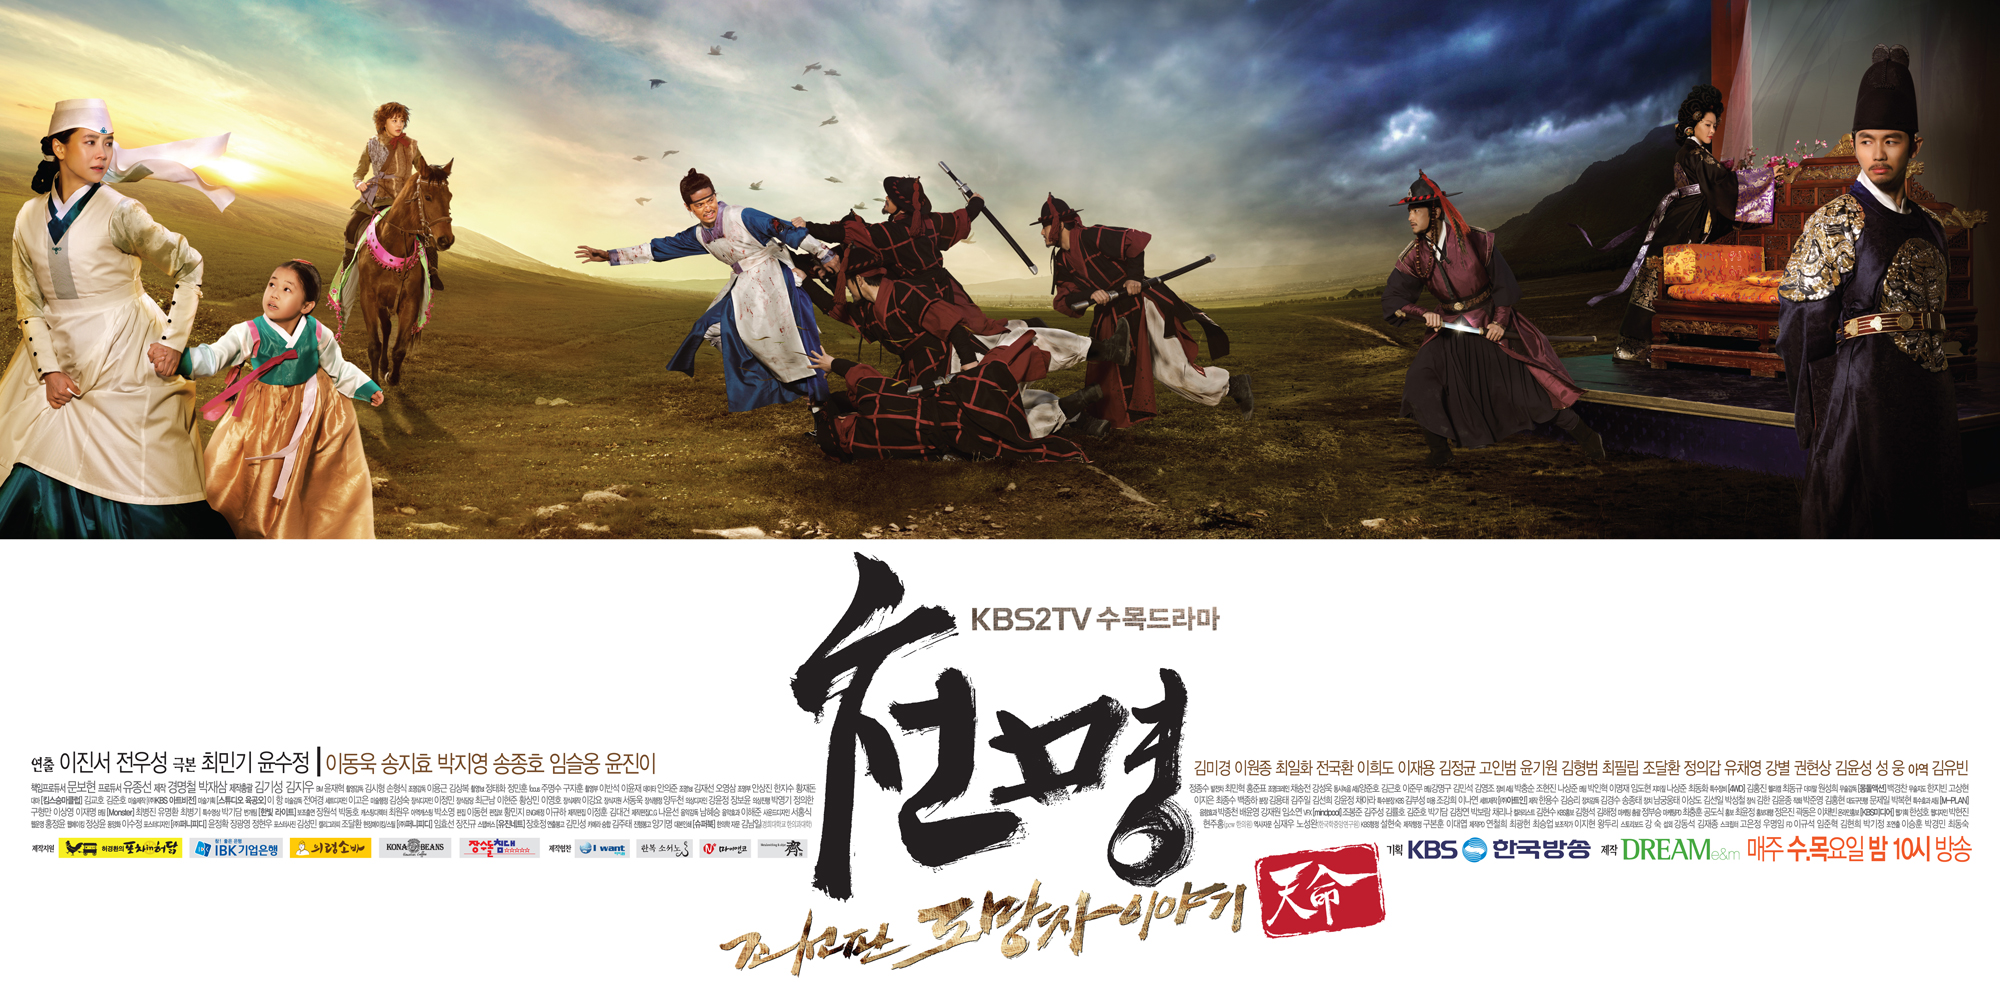 Heaven's Will: The Fugitive of Joseon